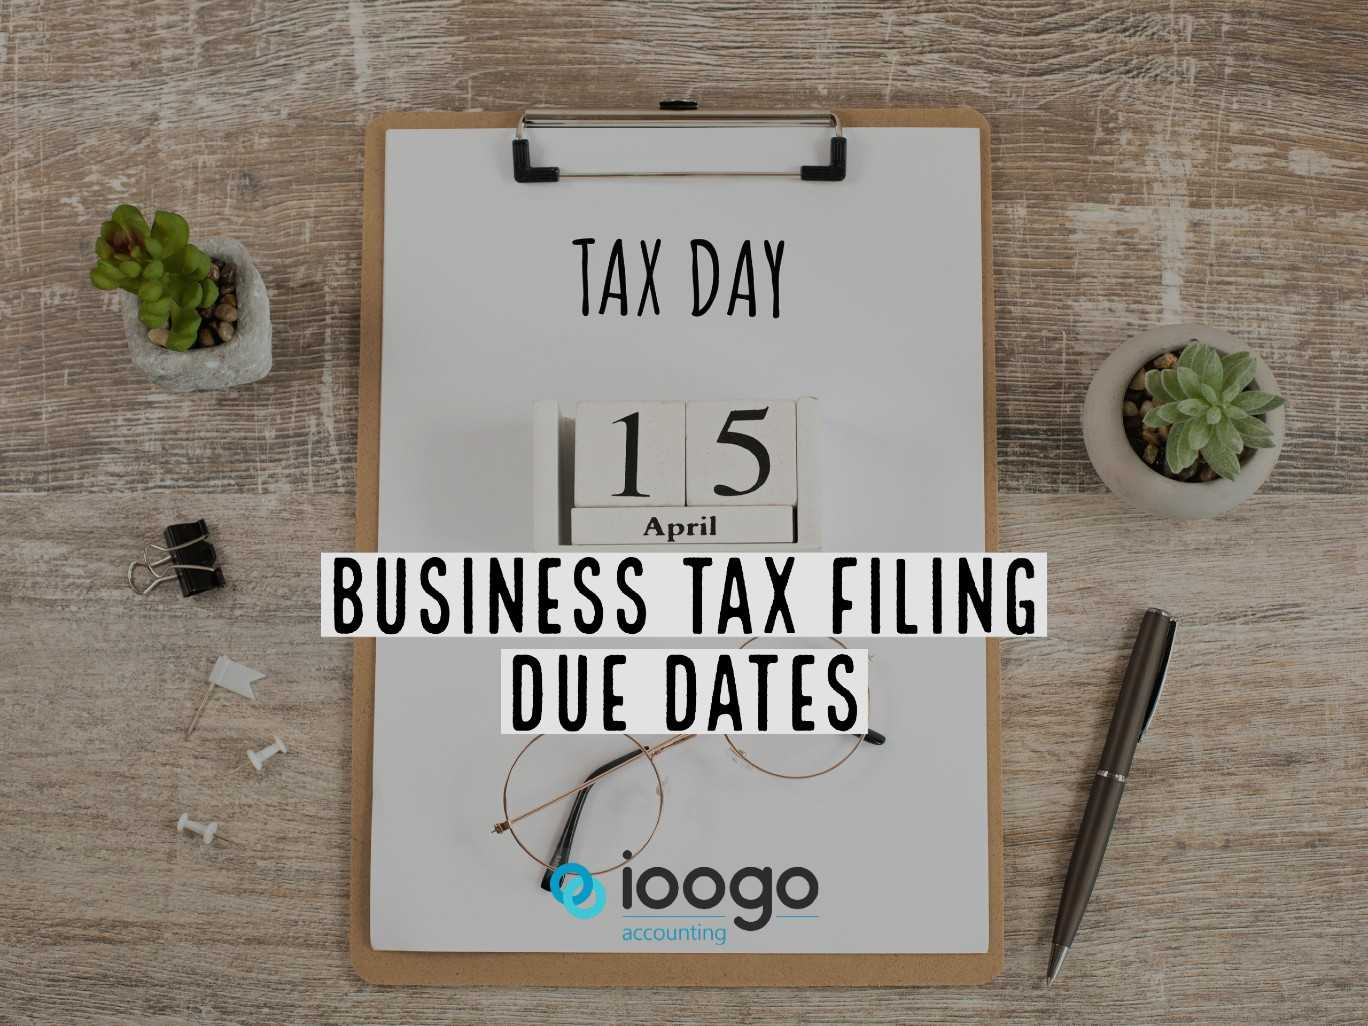 Business Tax Filing Due Dates